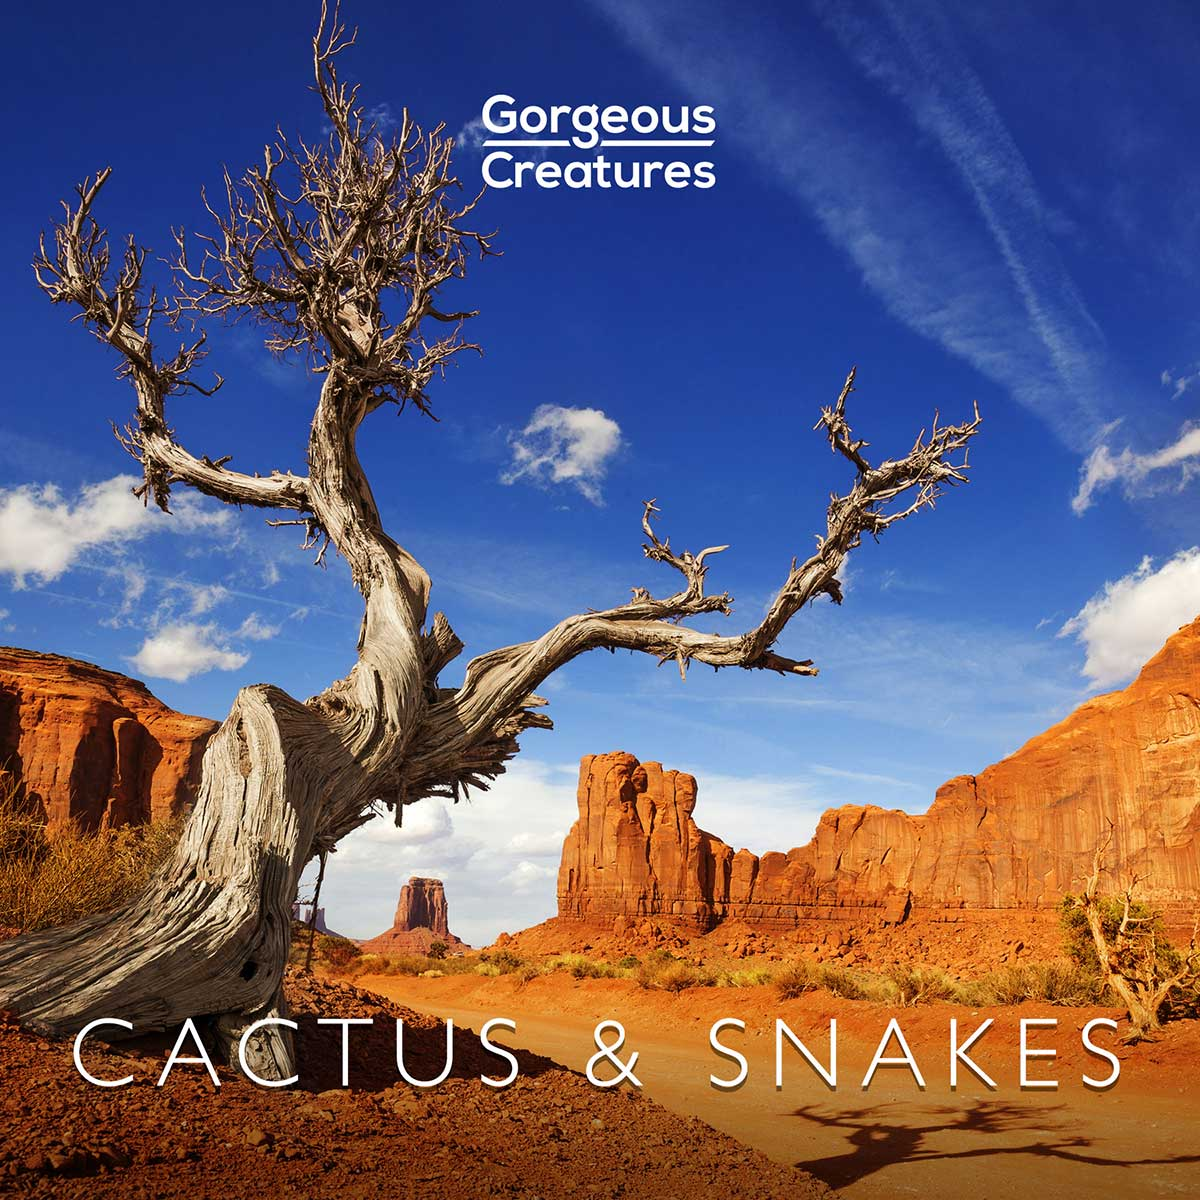 Cactus & Snakes by Gorgeous Creatures